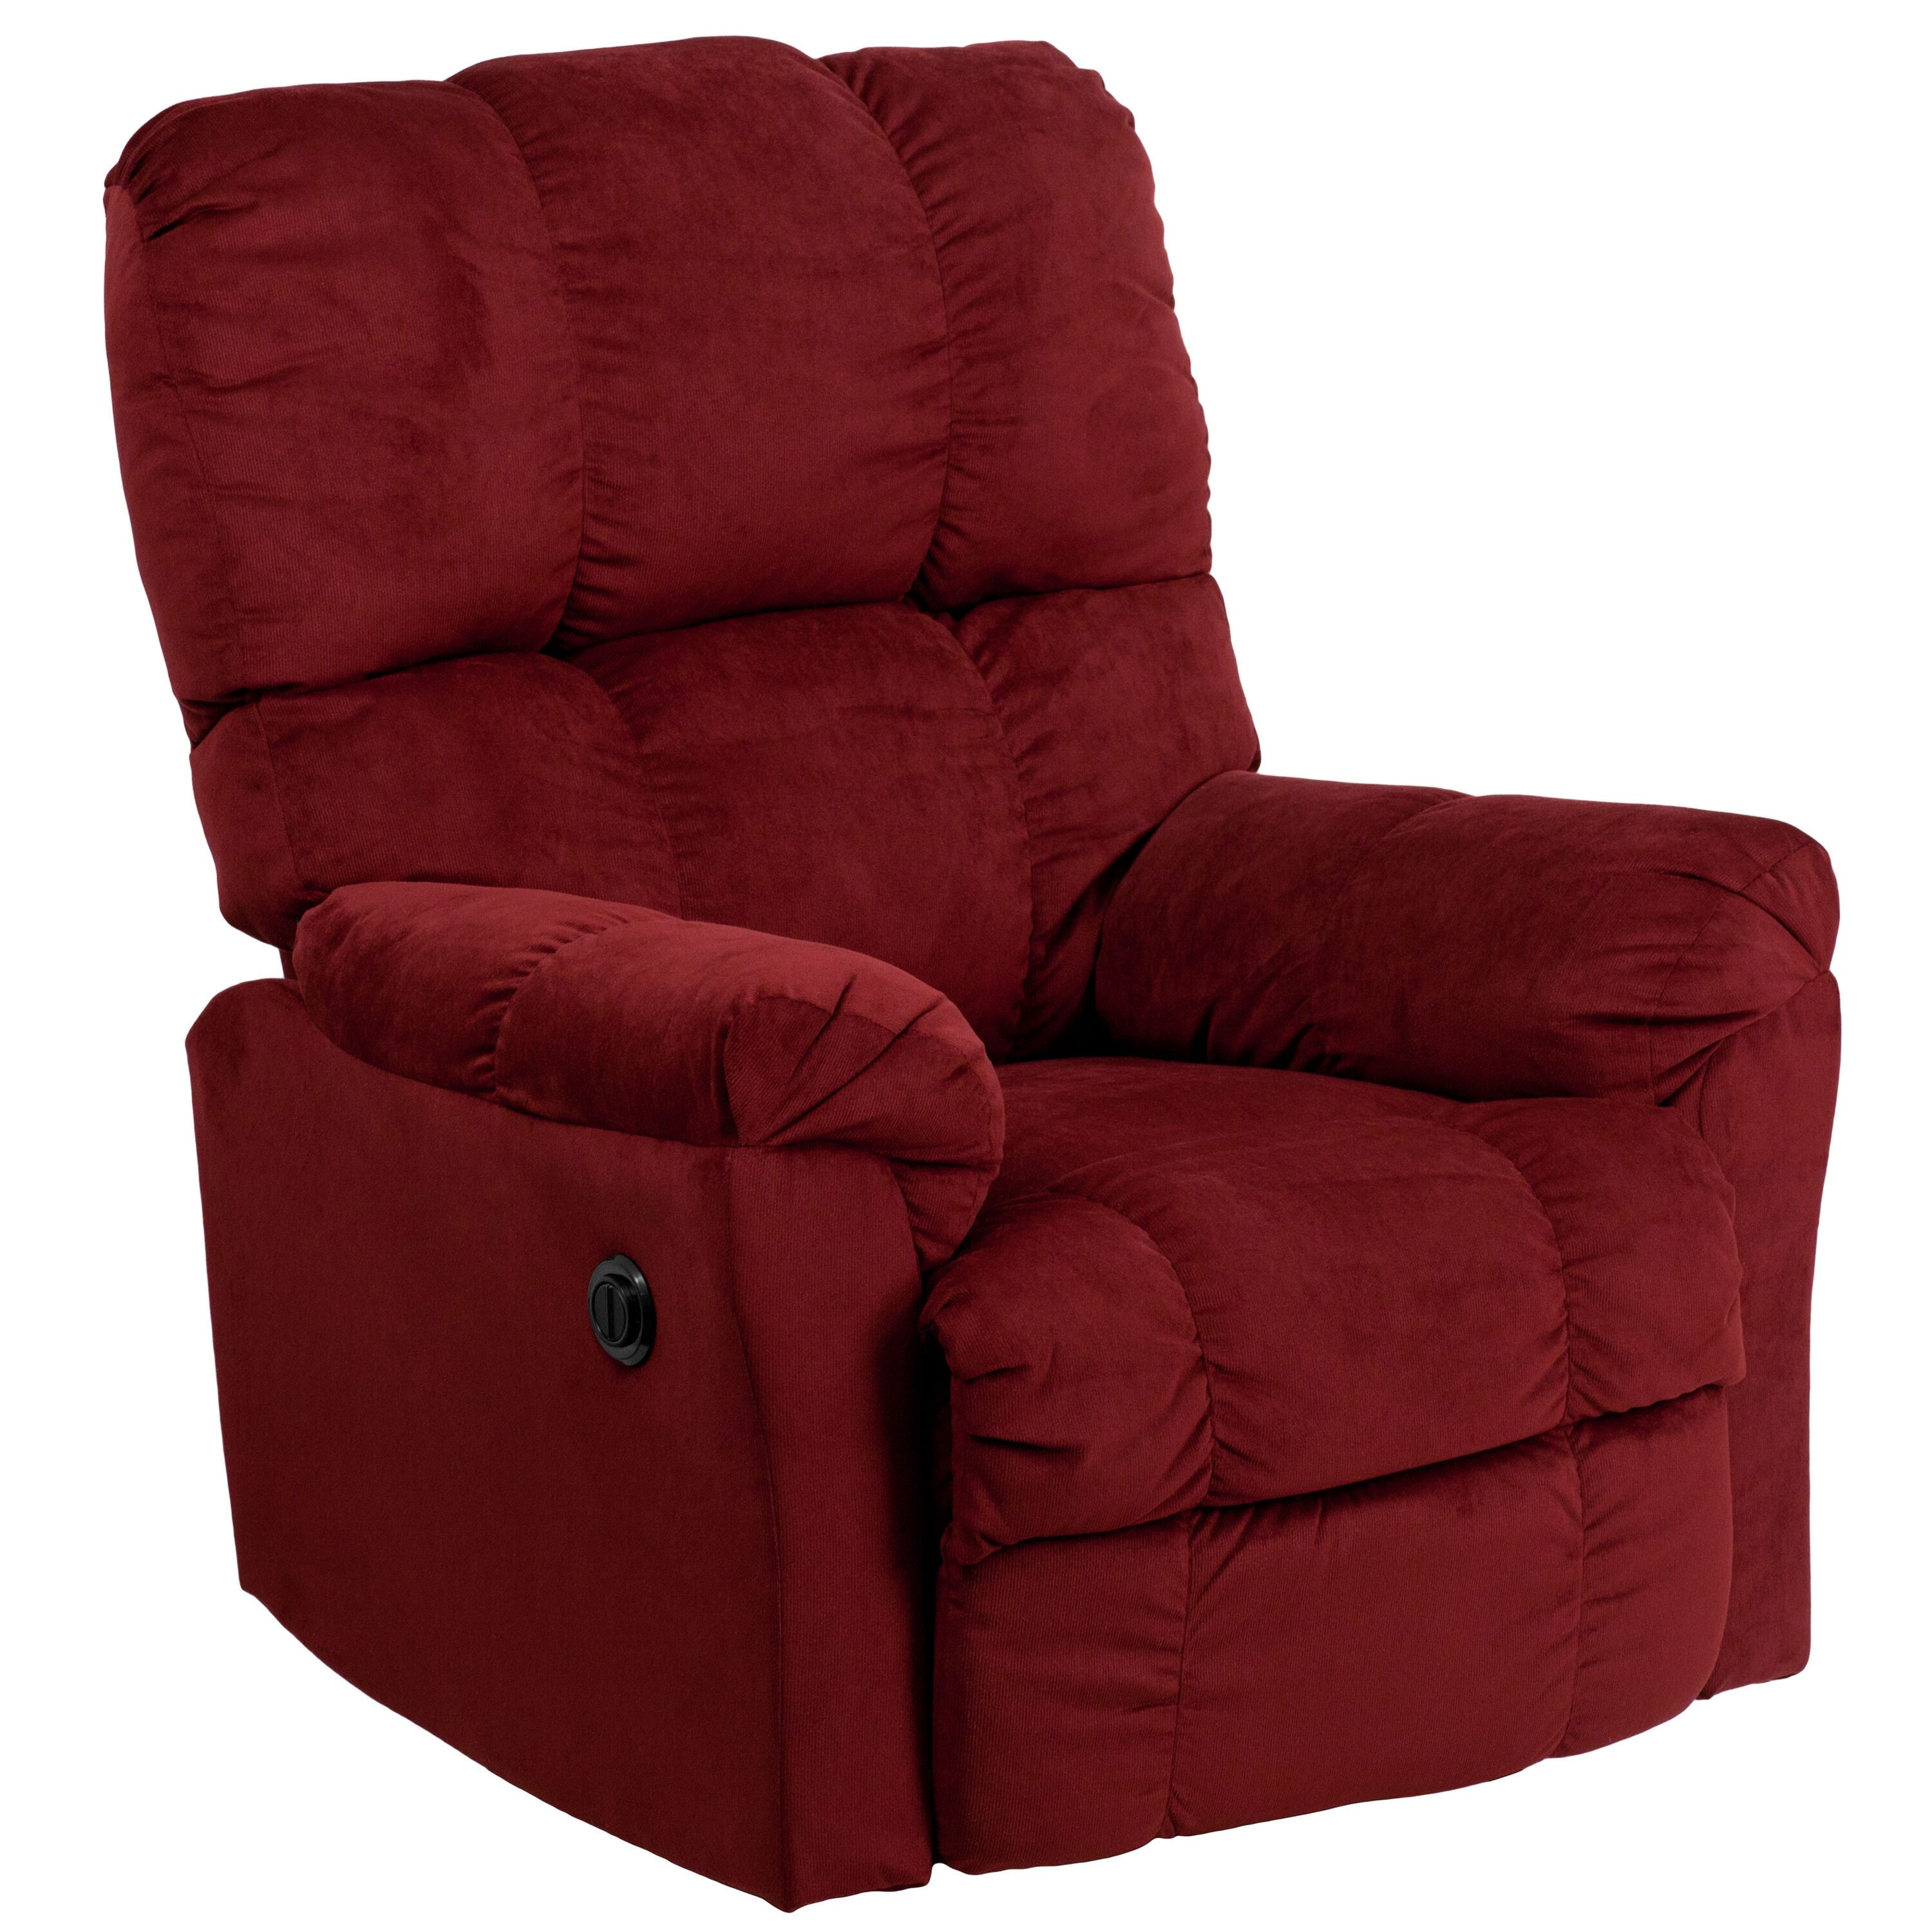 push button recliner chairs swivel chair oversized berry mic power am p9320 4170 gg bizchair